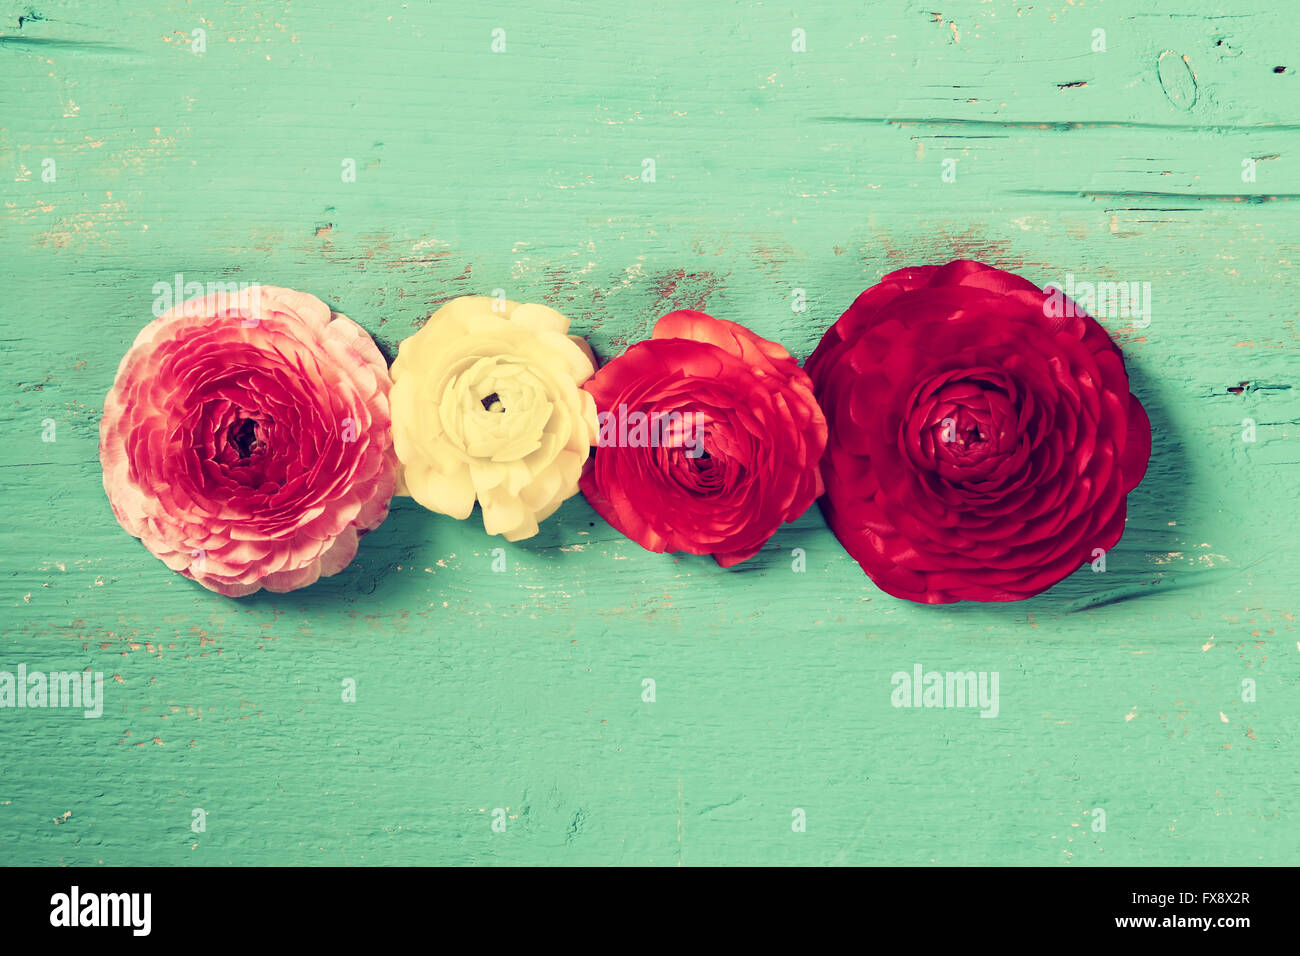 top view of colorful spring flowers on blue wooden background. vintage filtered. - Stock Image